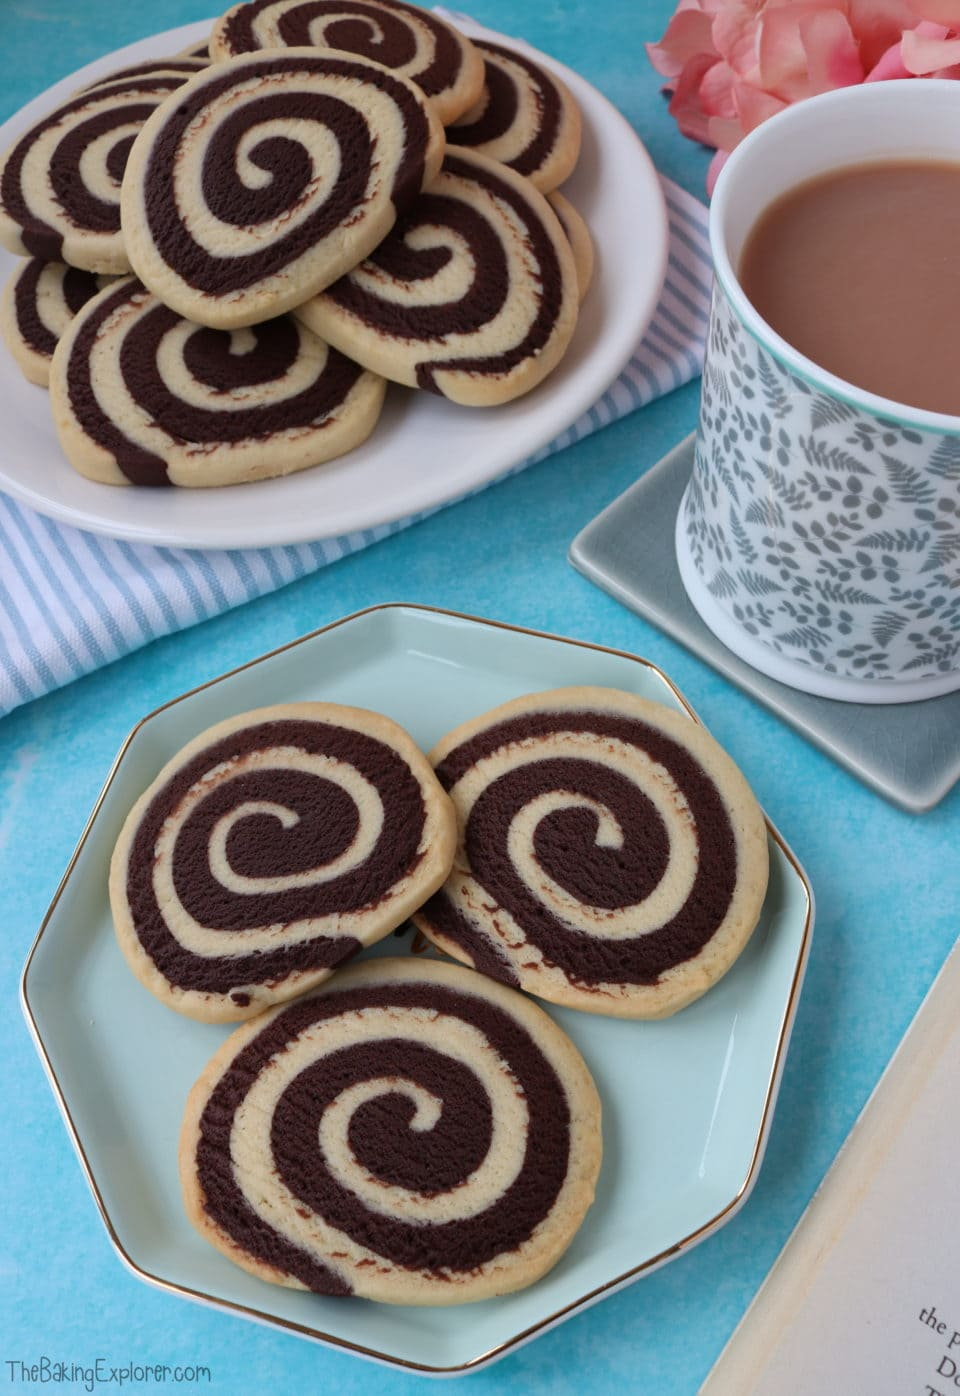 Chocolate & Vanilla Pinwheel Biscuits